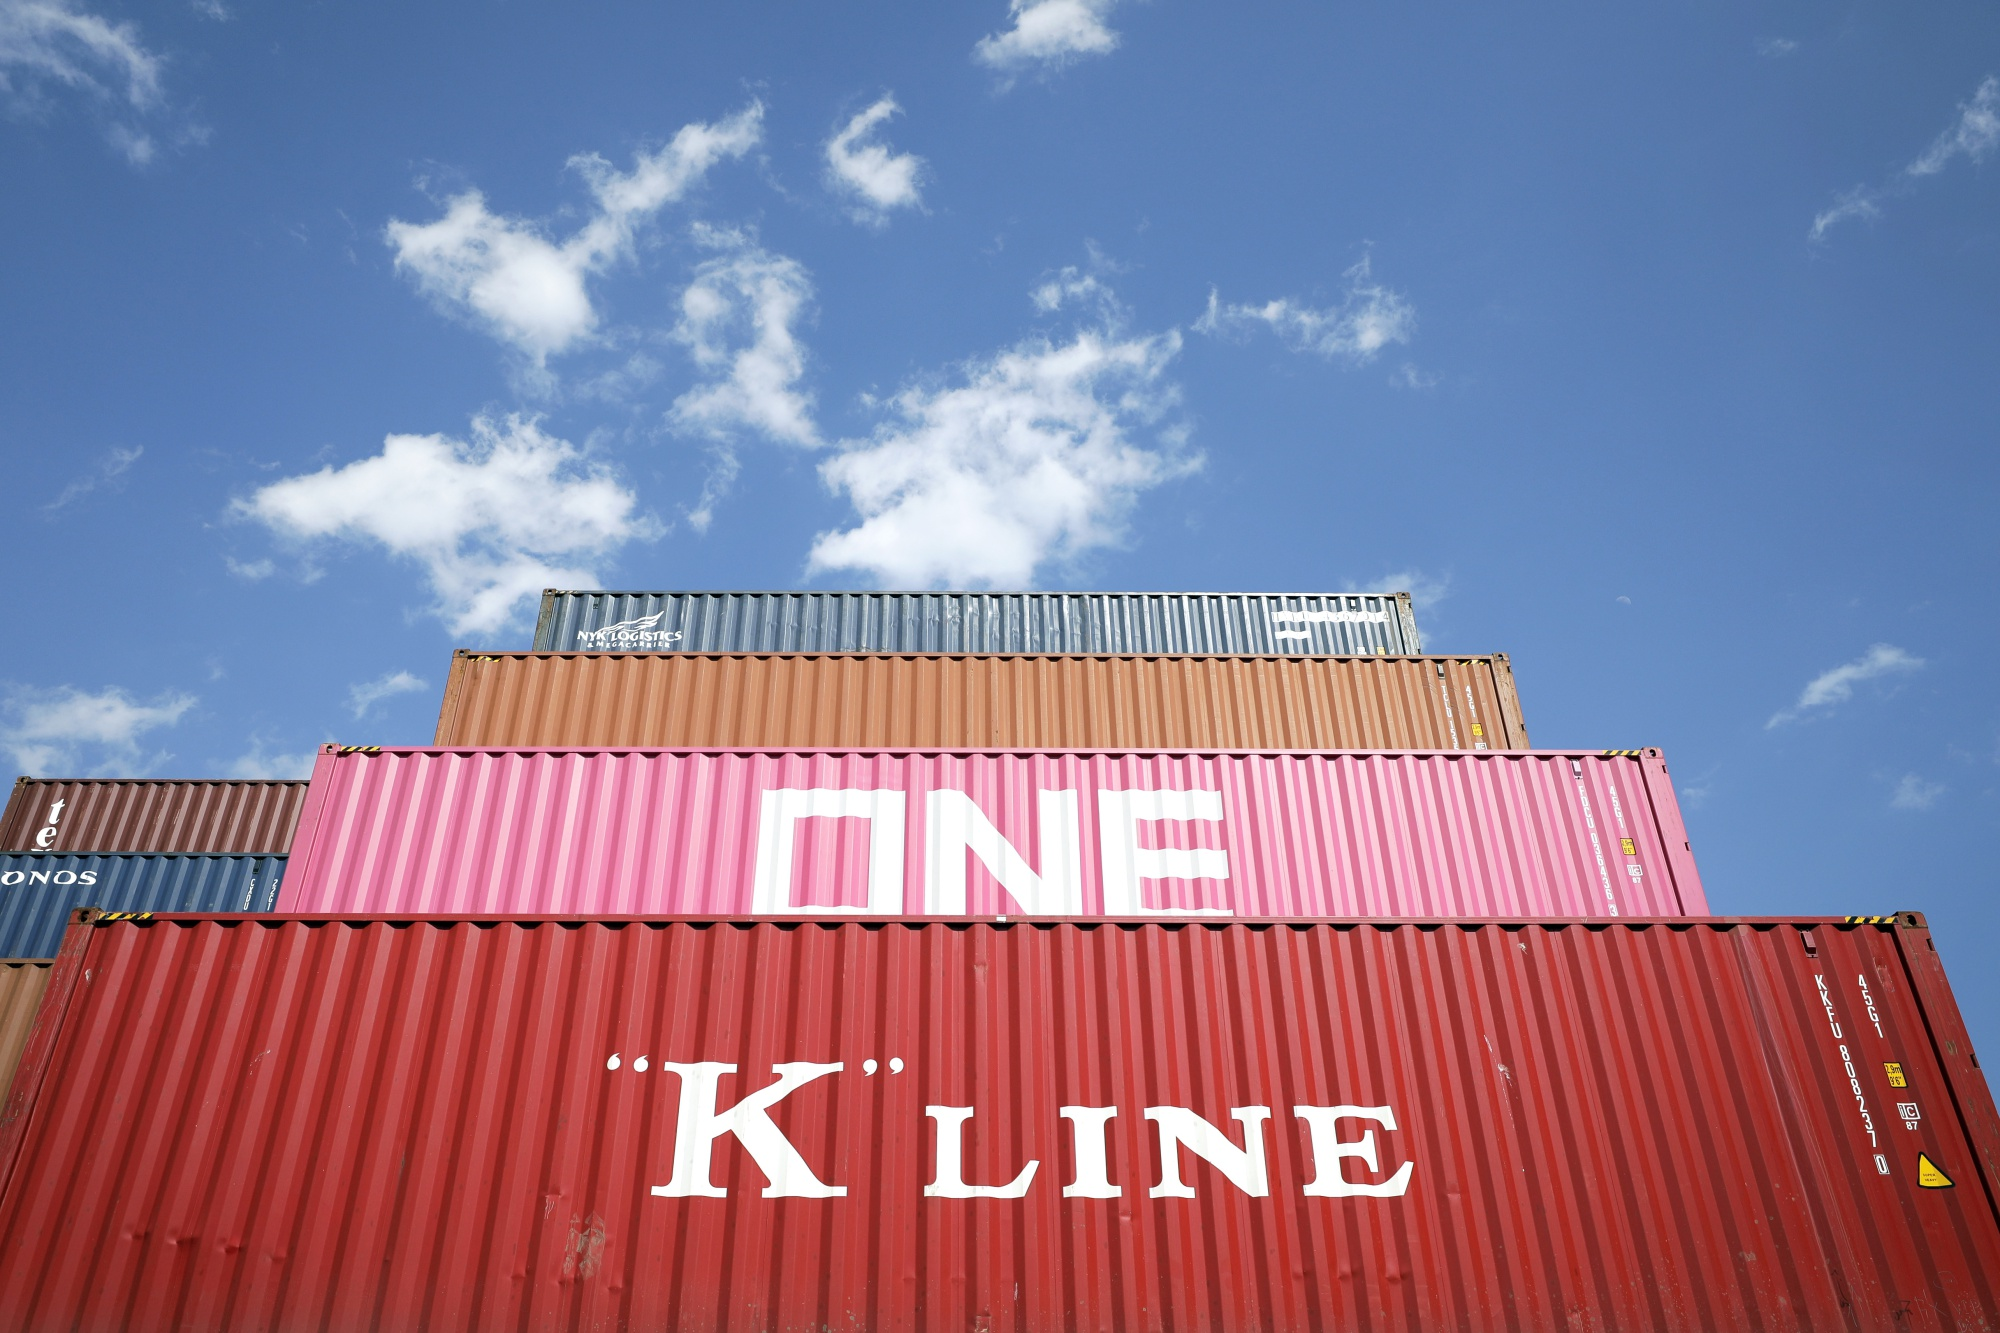 Shipping containers sit stacked at a terminal in Tokyo, Japan